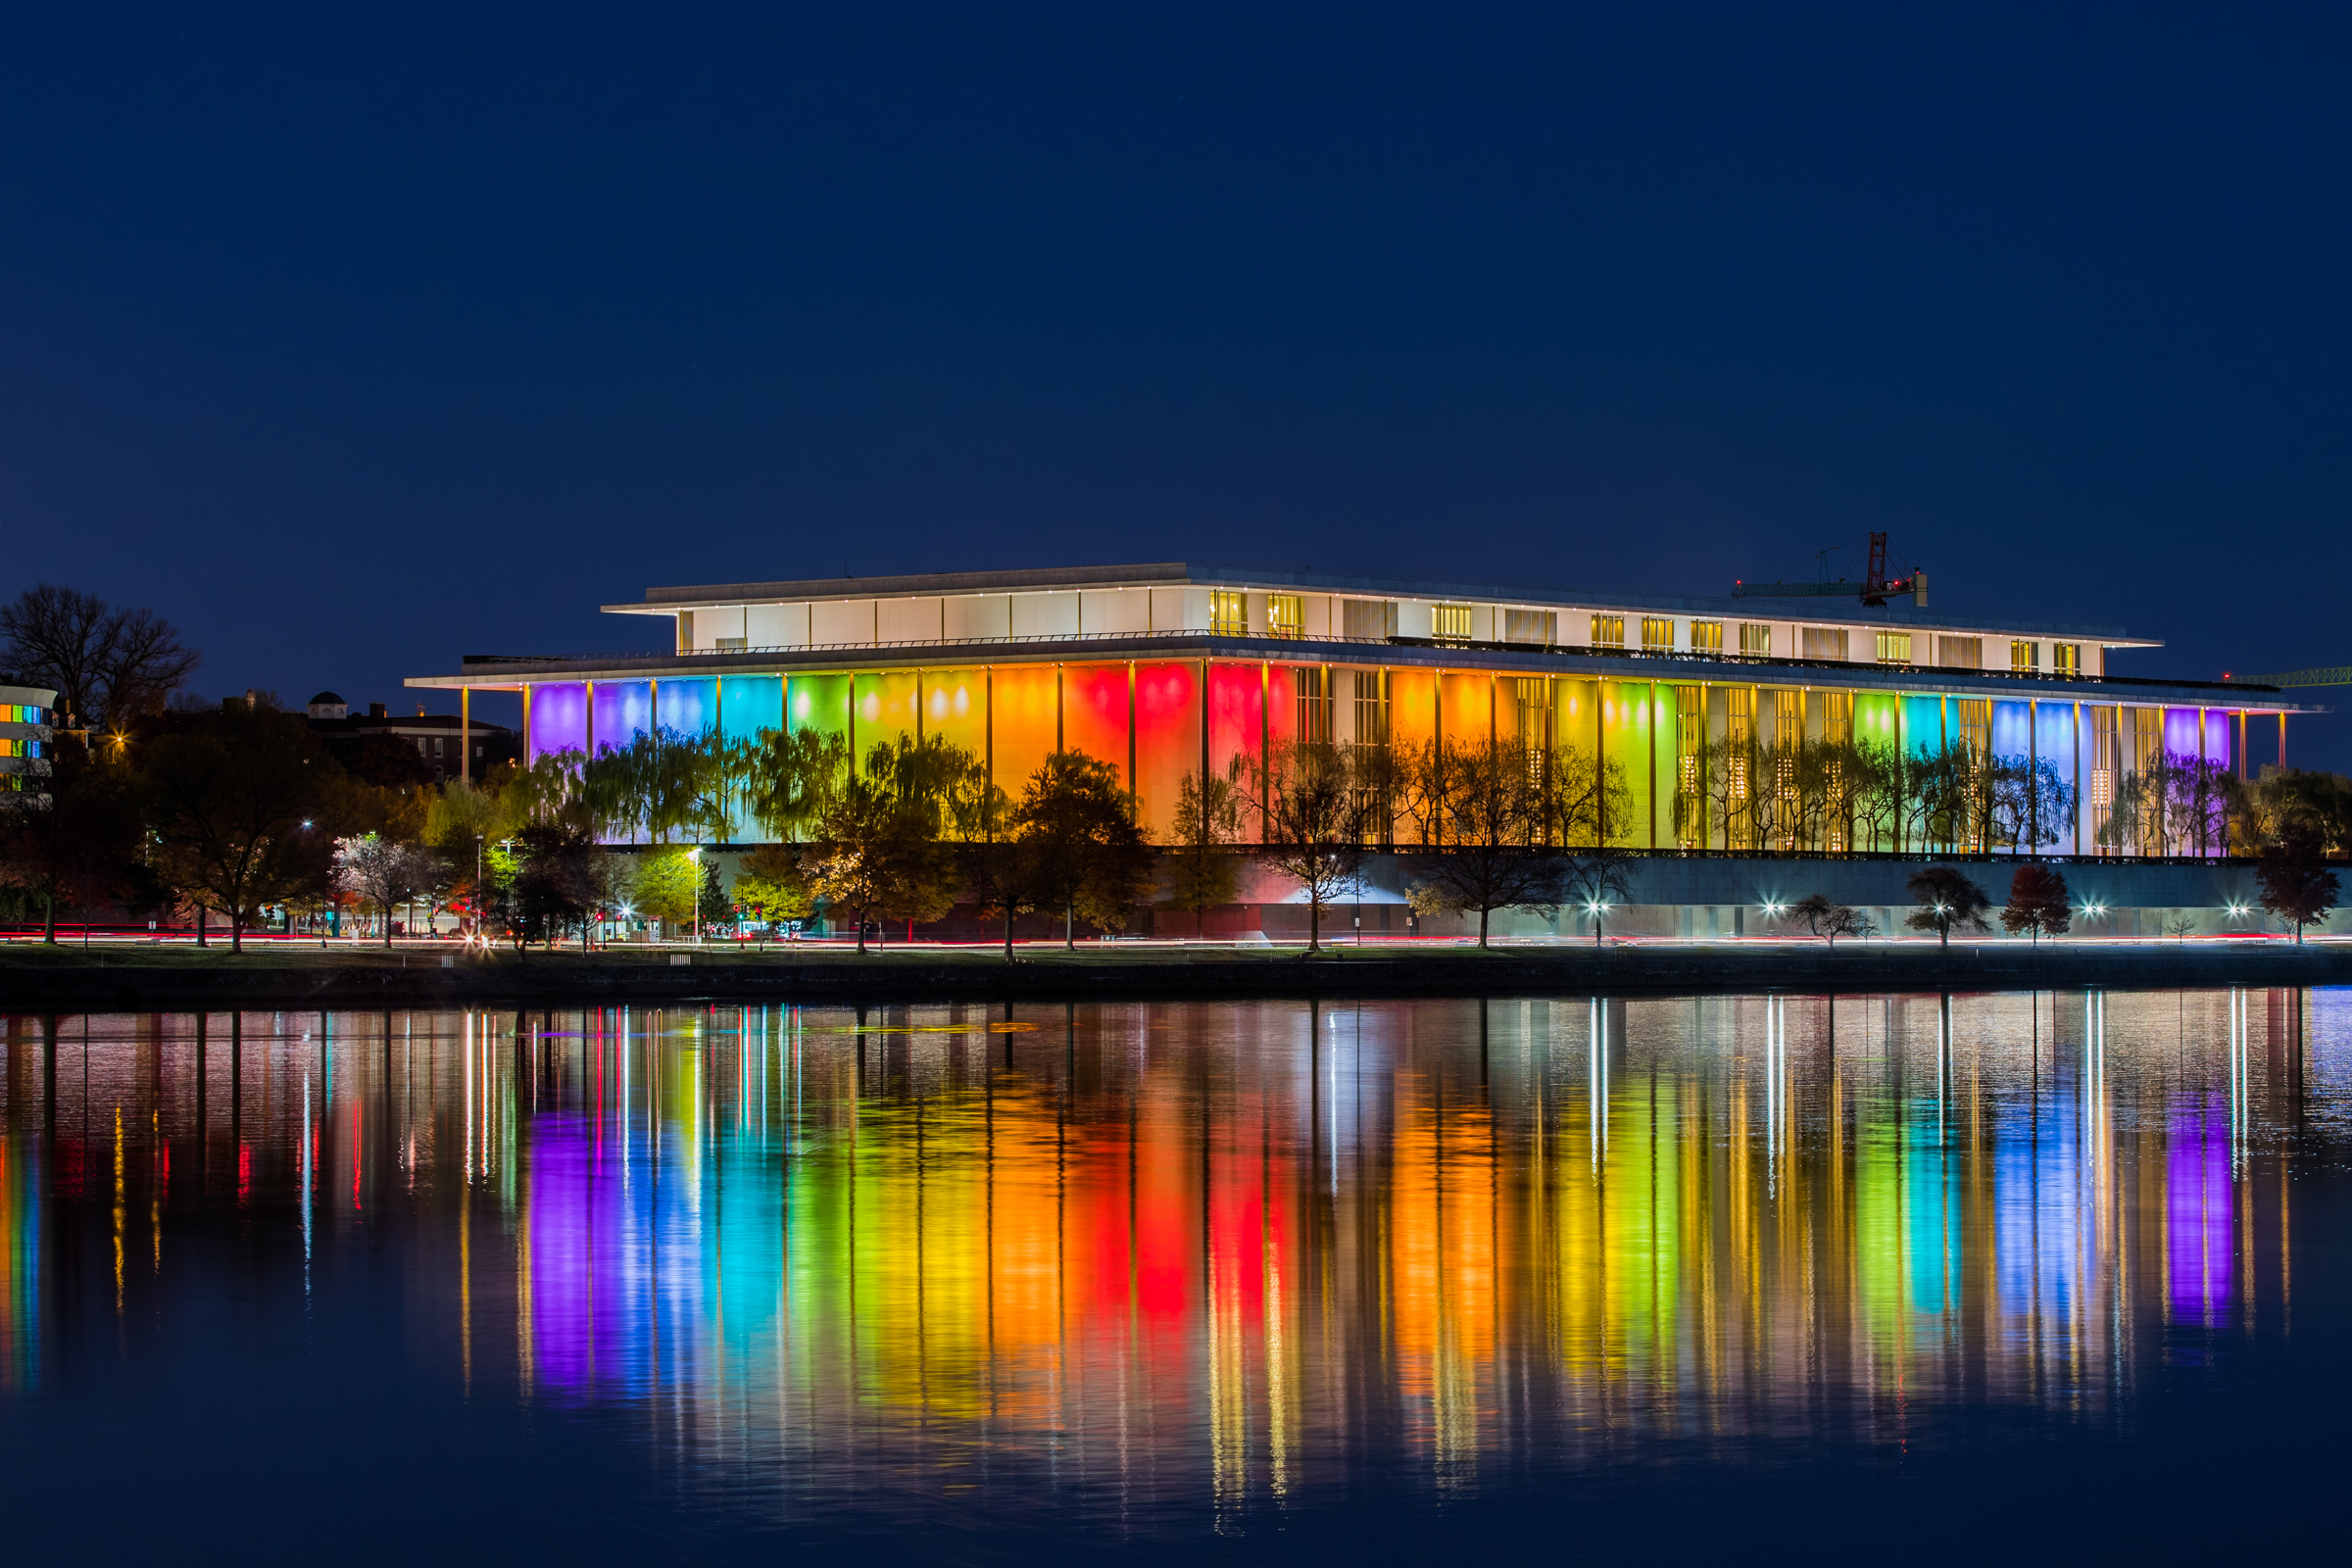 The 41st annual Kennedy Center Honors will recognize the lifetime achievements of Cher, Reba McEntire, Philip Glass and Wayne Shorter, as well as the co-creators of Hamilton. (Image: Yassine El Mansouri)